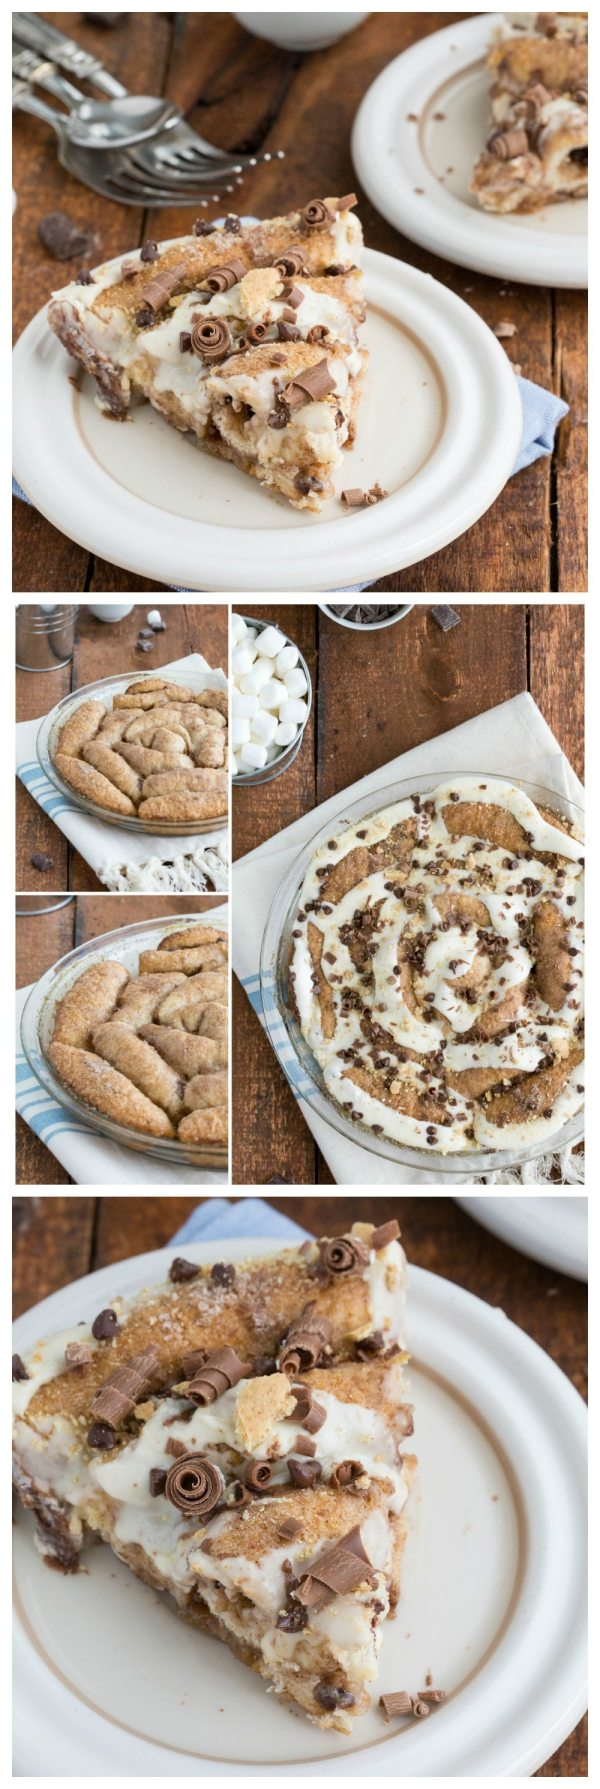 A 30-minute, no rising required S'mores-flavored cinnamon roll cake I via chelseasmessyapron I #cinnamonroll #smores #norising